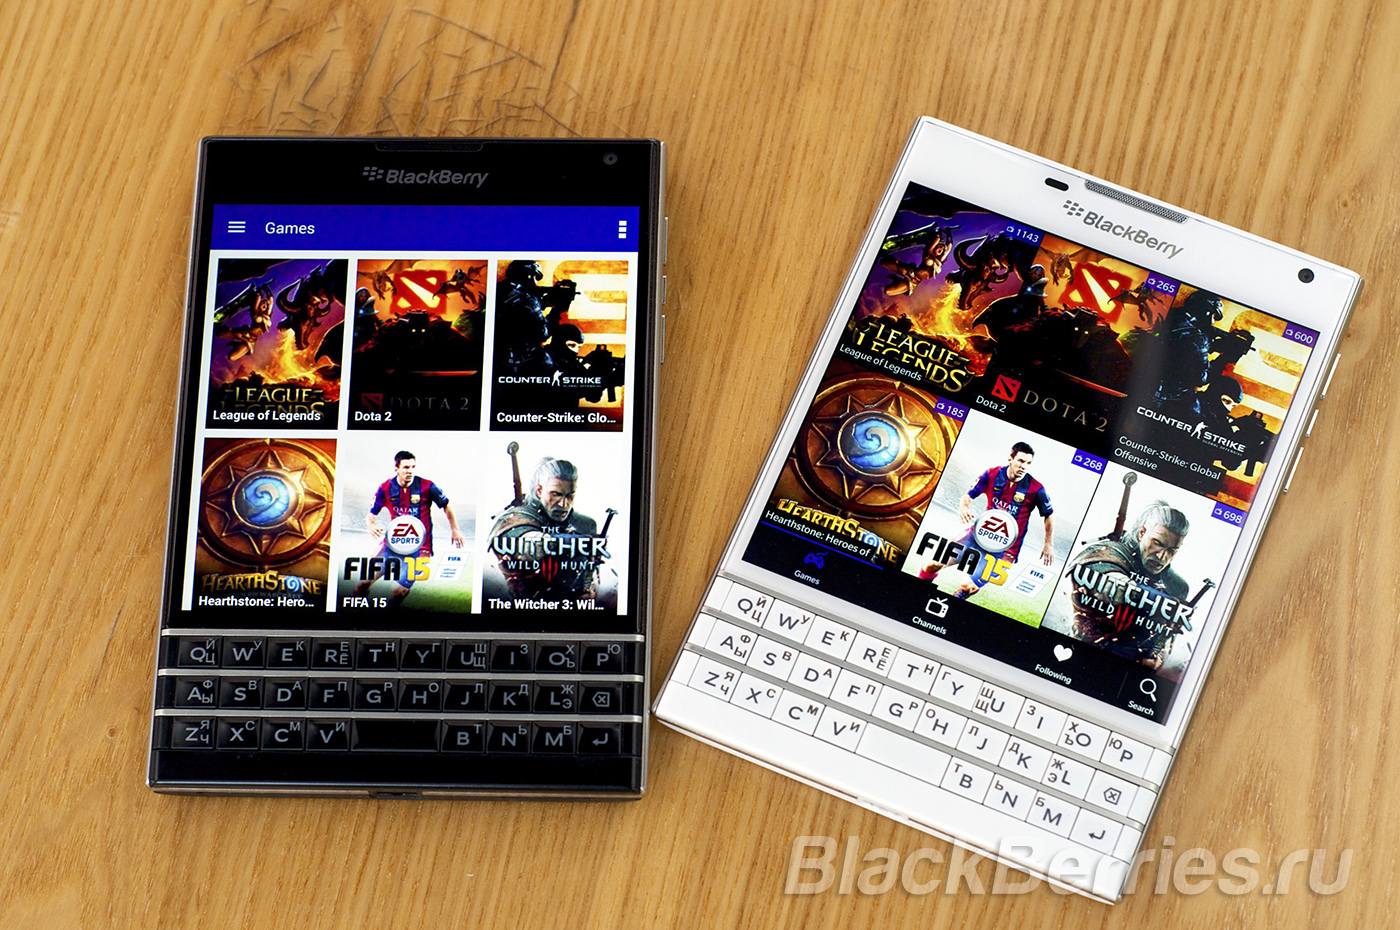 BlackBerry-Passport-App-23-05-03